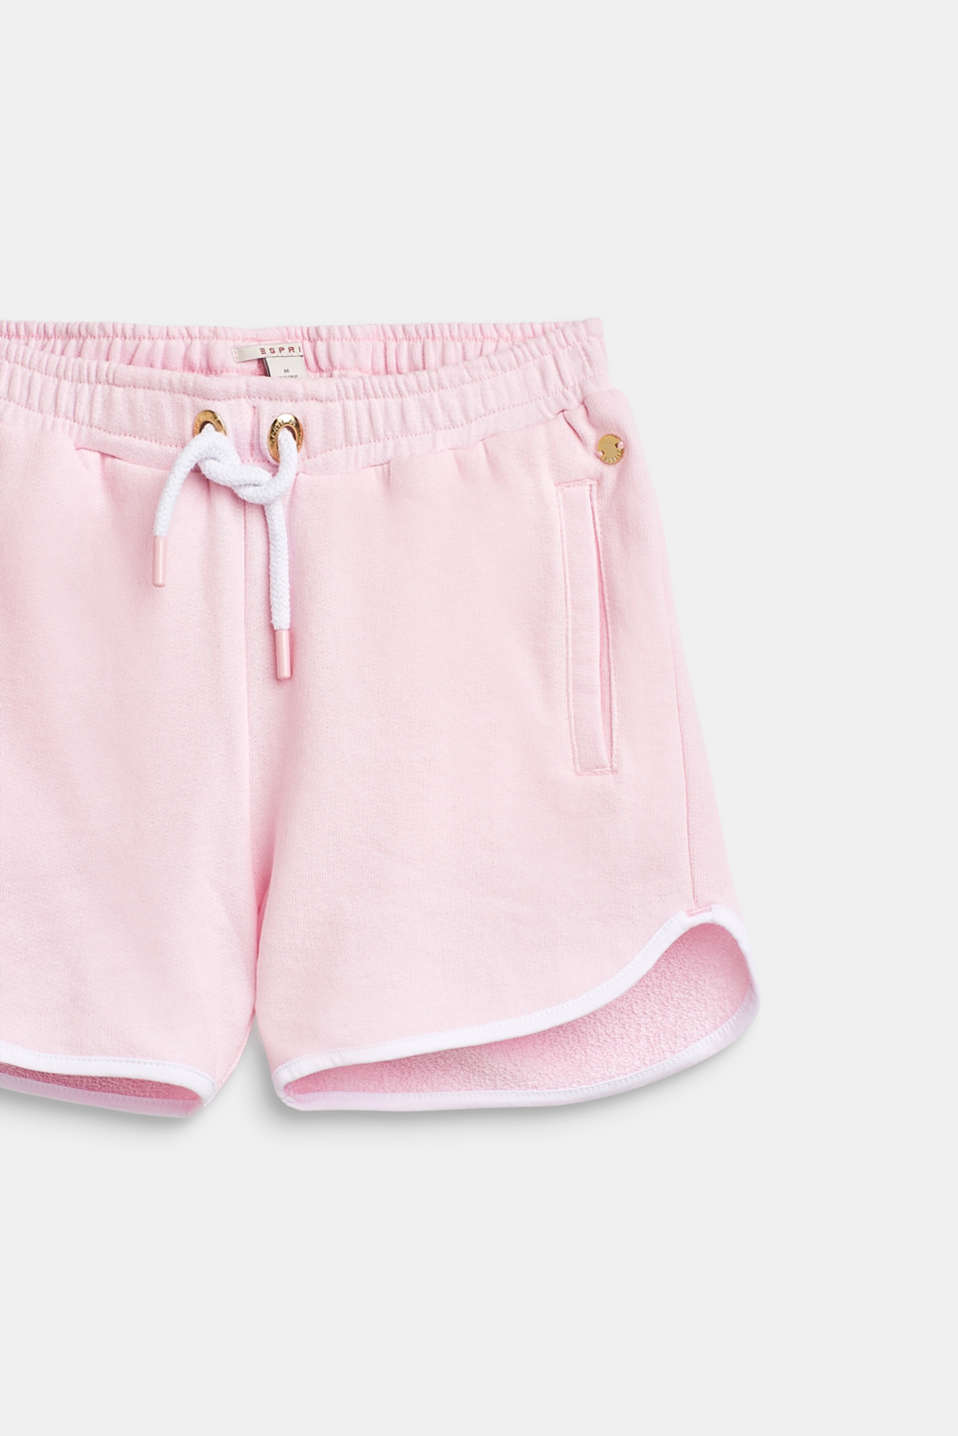 Sweatshirt shorts with piping, 100% cotton, LCBLUSH, detail image number 3